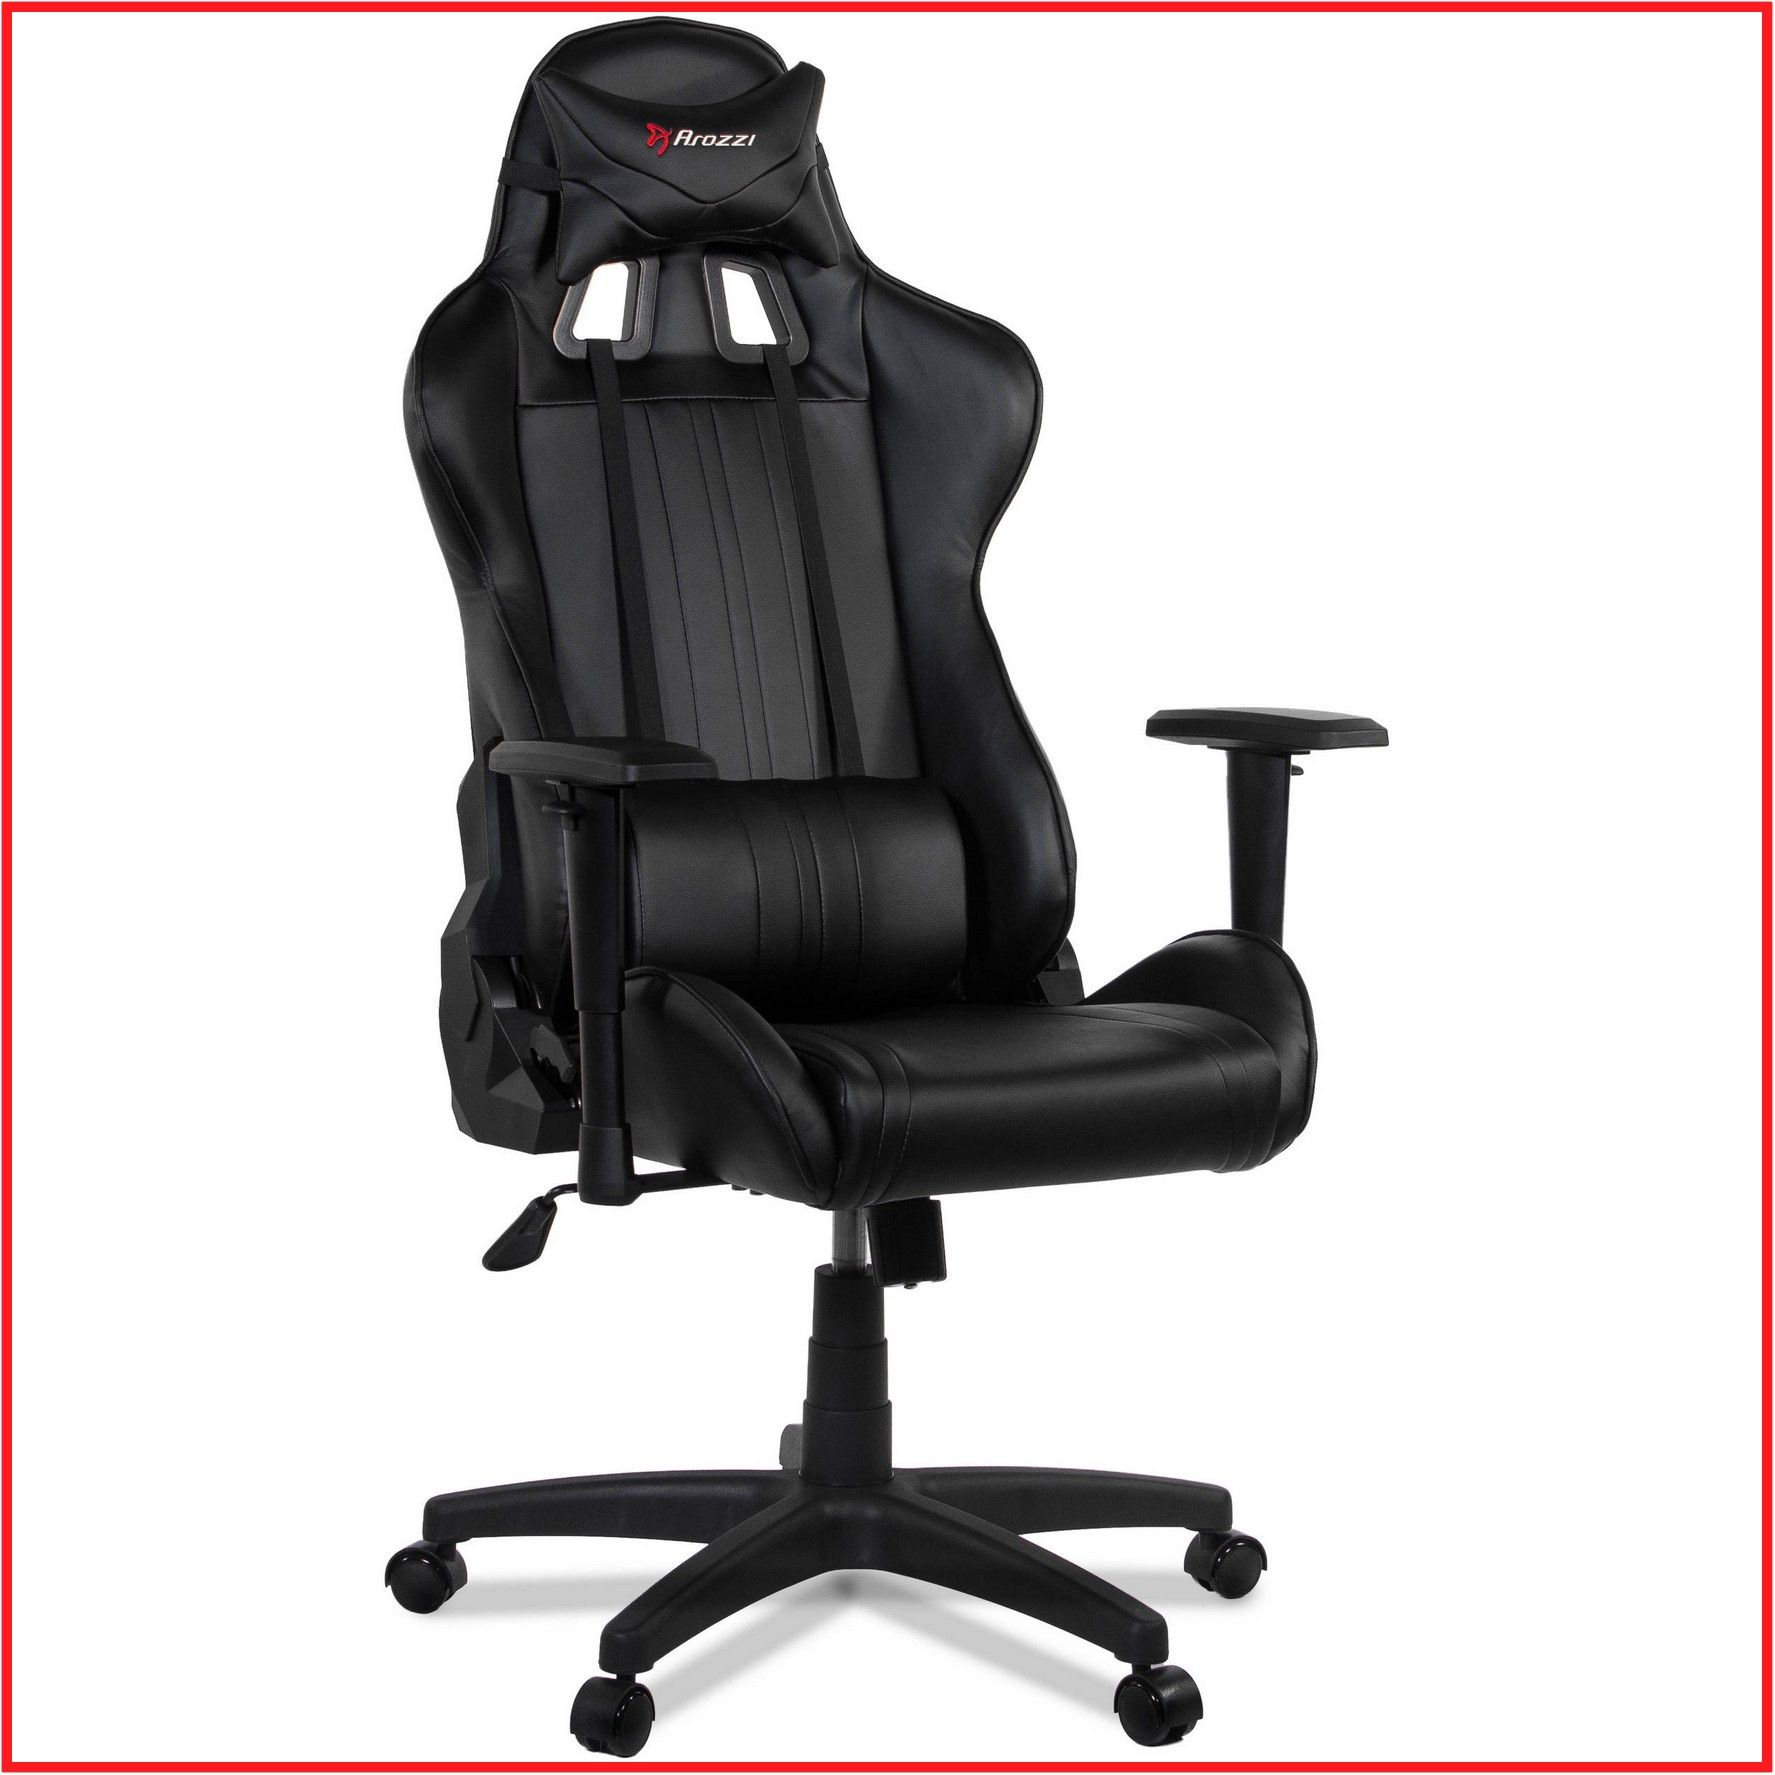 115 Reference Of Black Chair Gaming In 2020 Black Chair Gaming Chair Chair